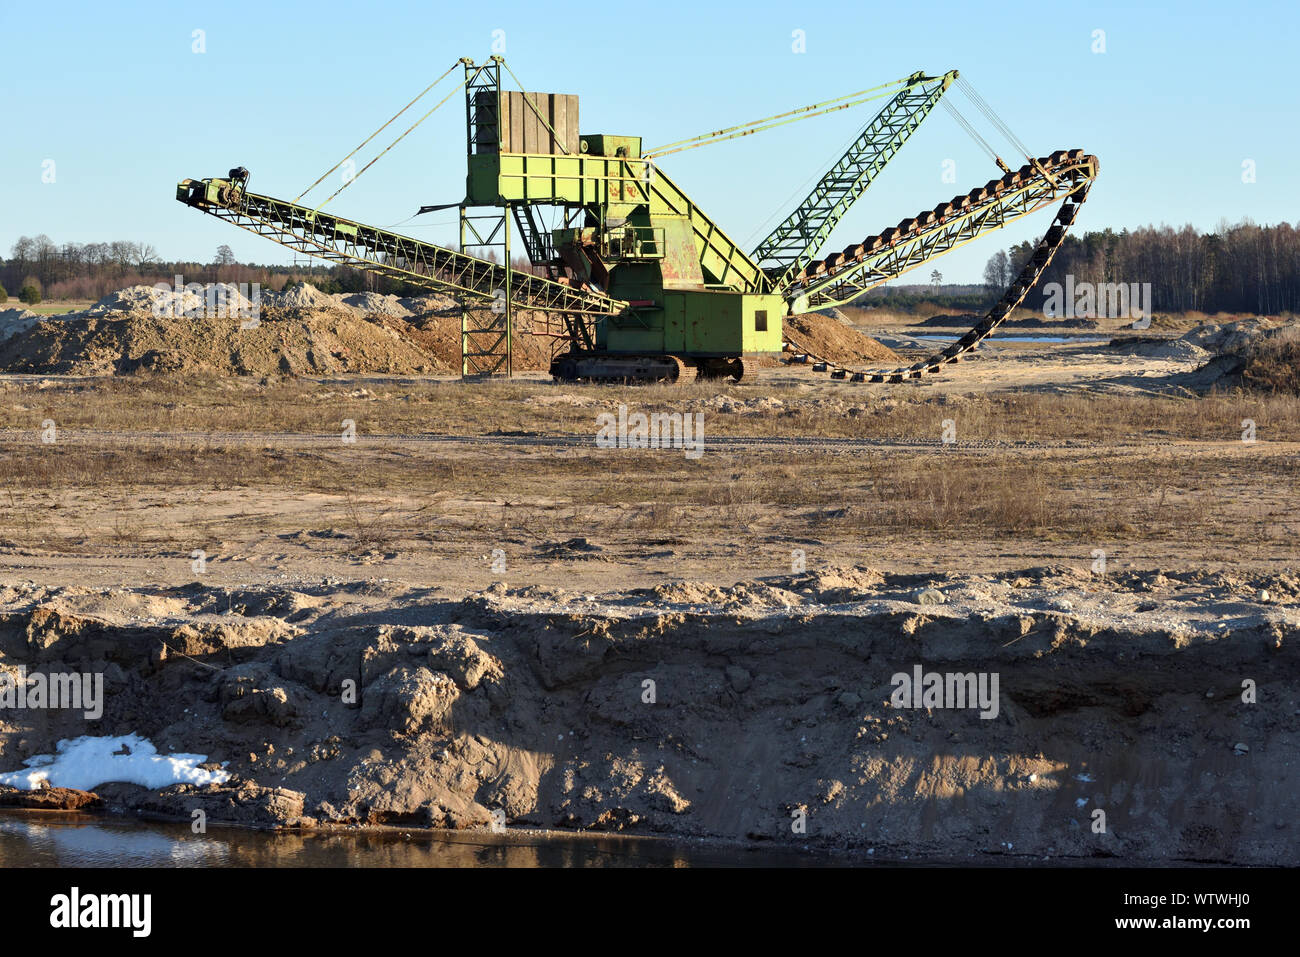 Stone crusher in the quarry. Working mining machine - stone crusher. Quarrying of stones for construction works. Mining industry Stock Photo